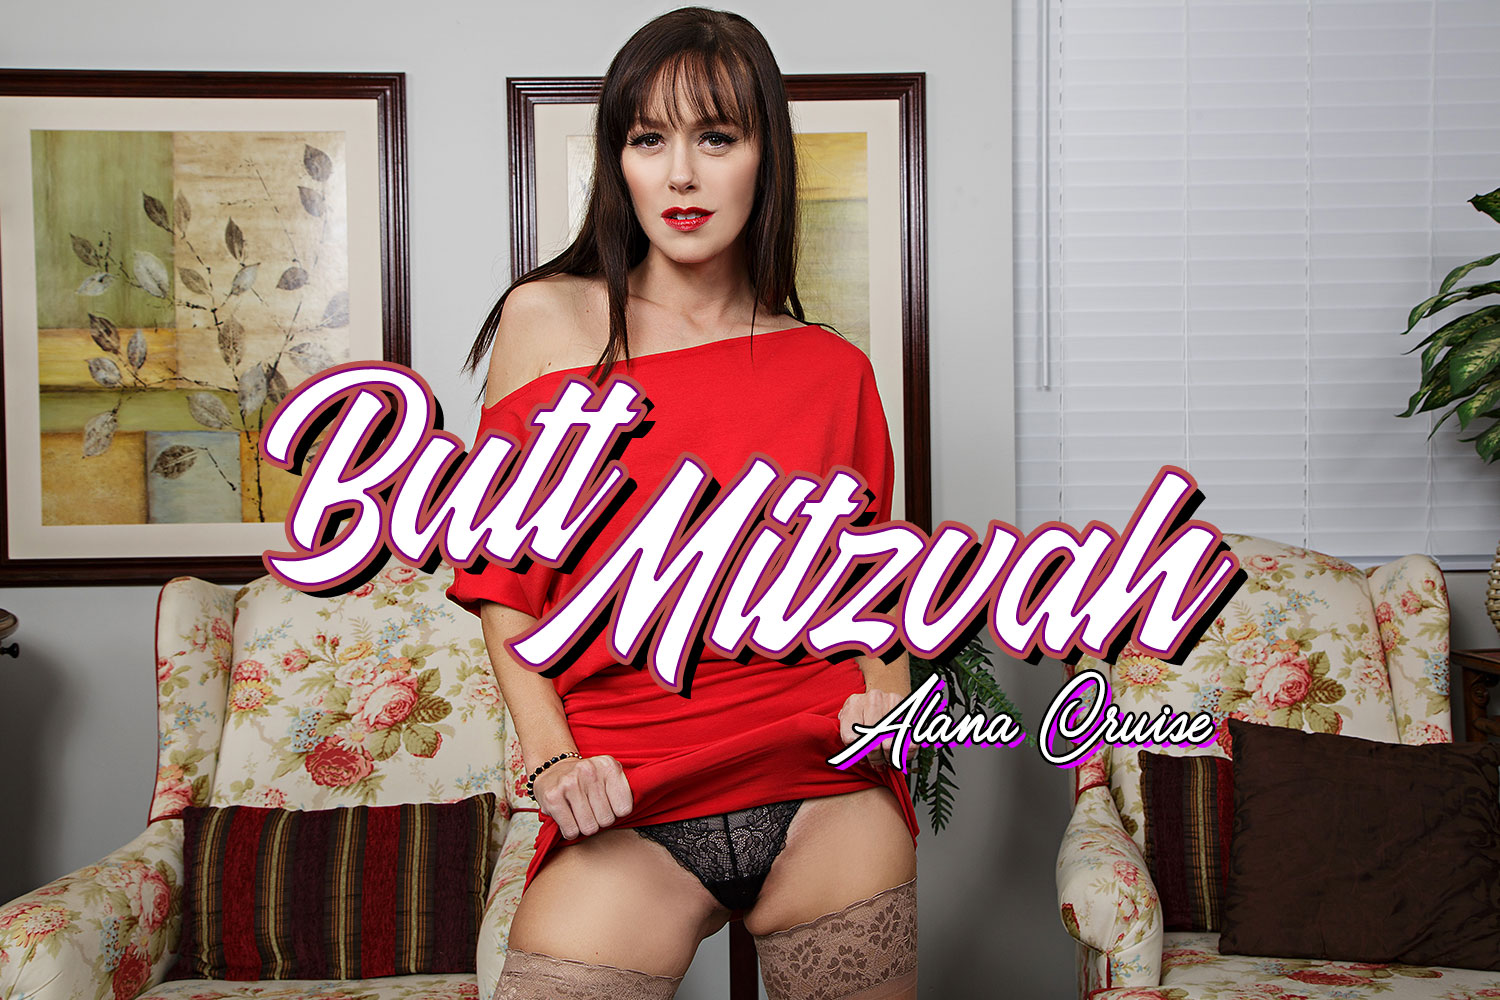 Butt Mitzvah VR Porn Video